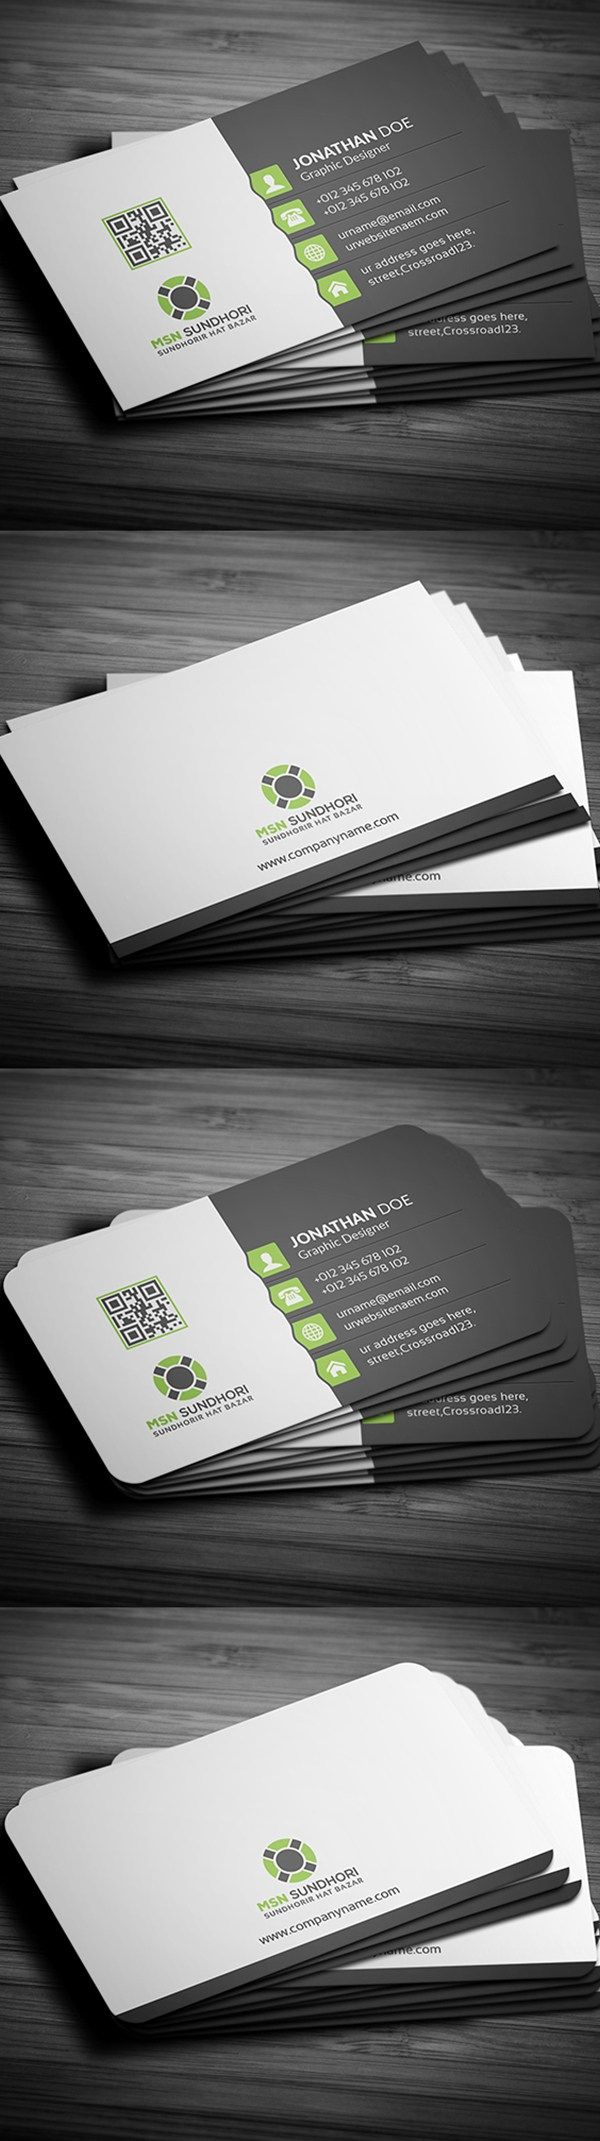 164 Best Business Card Images On Pinterest Psd Templates Business